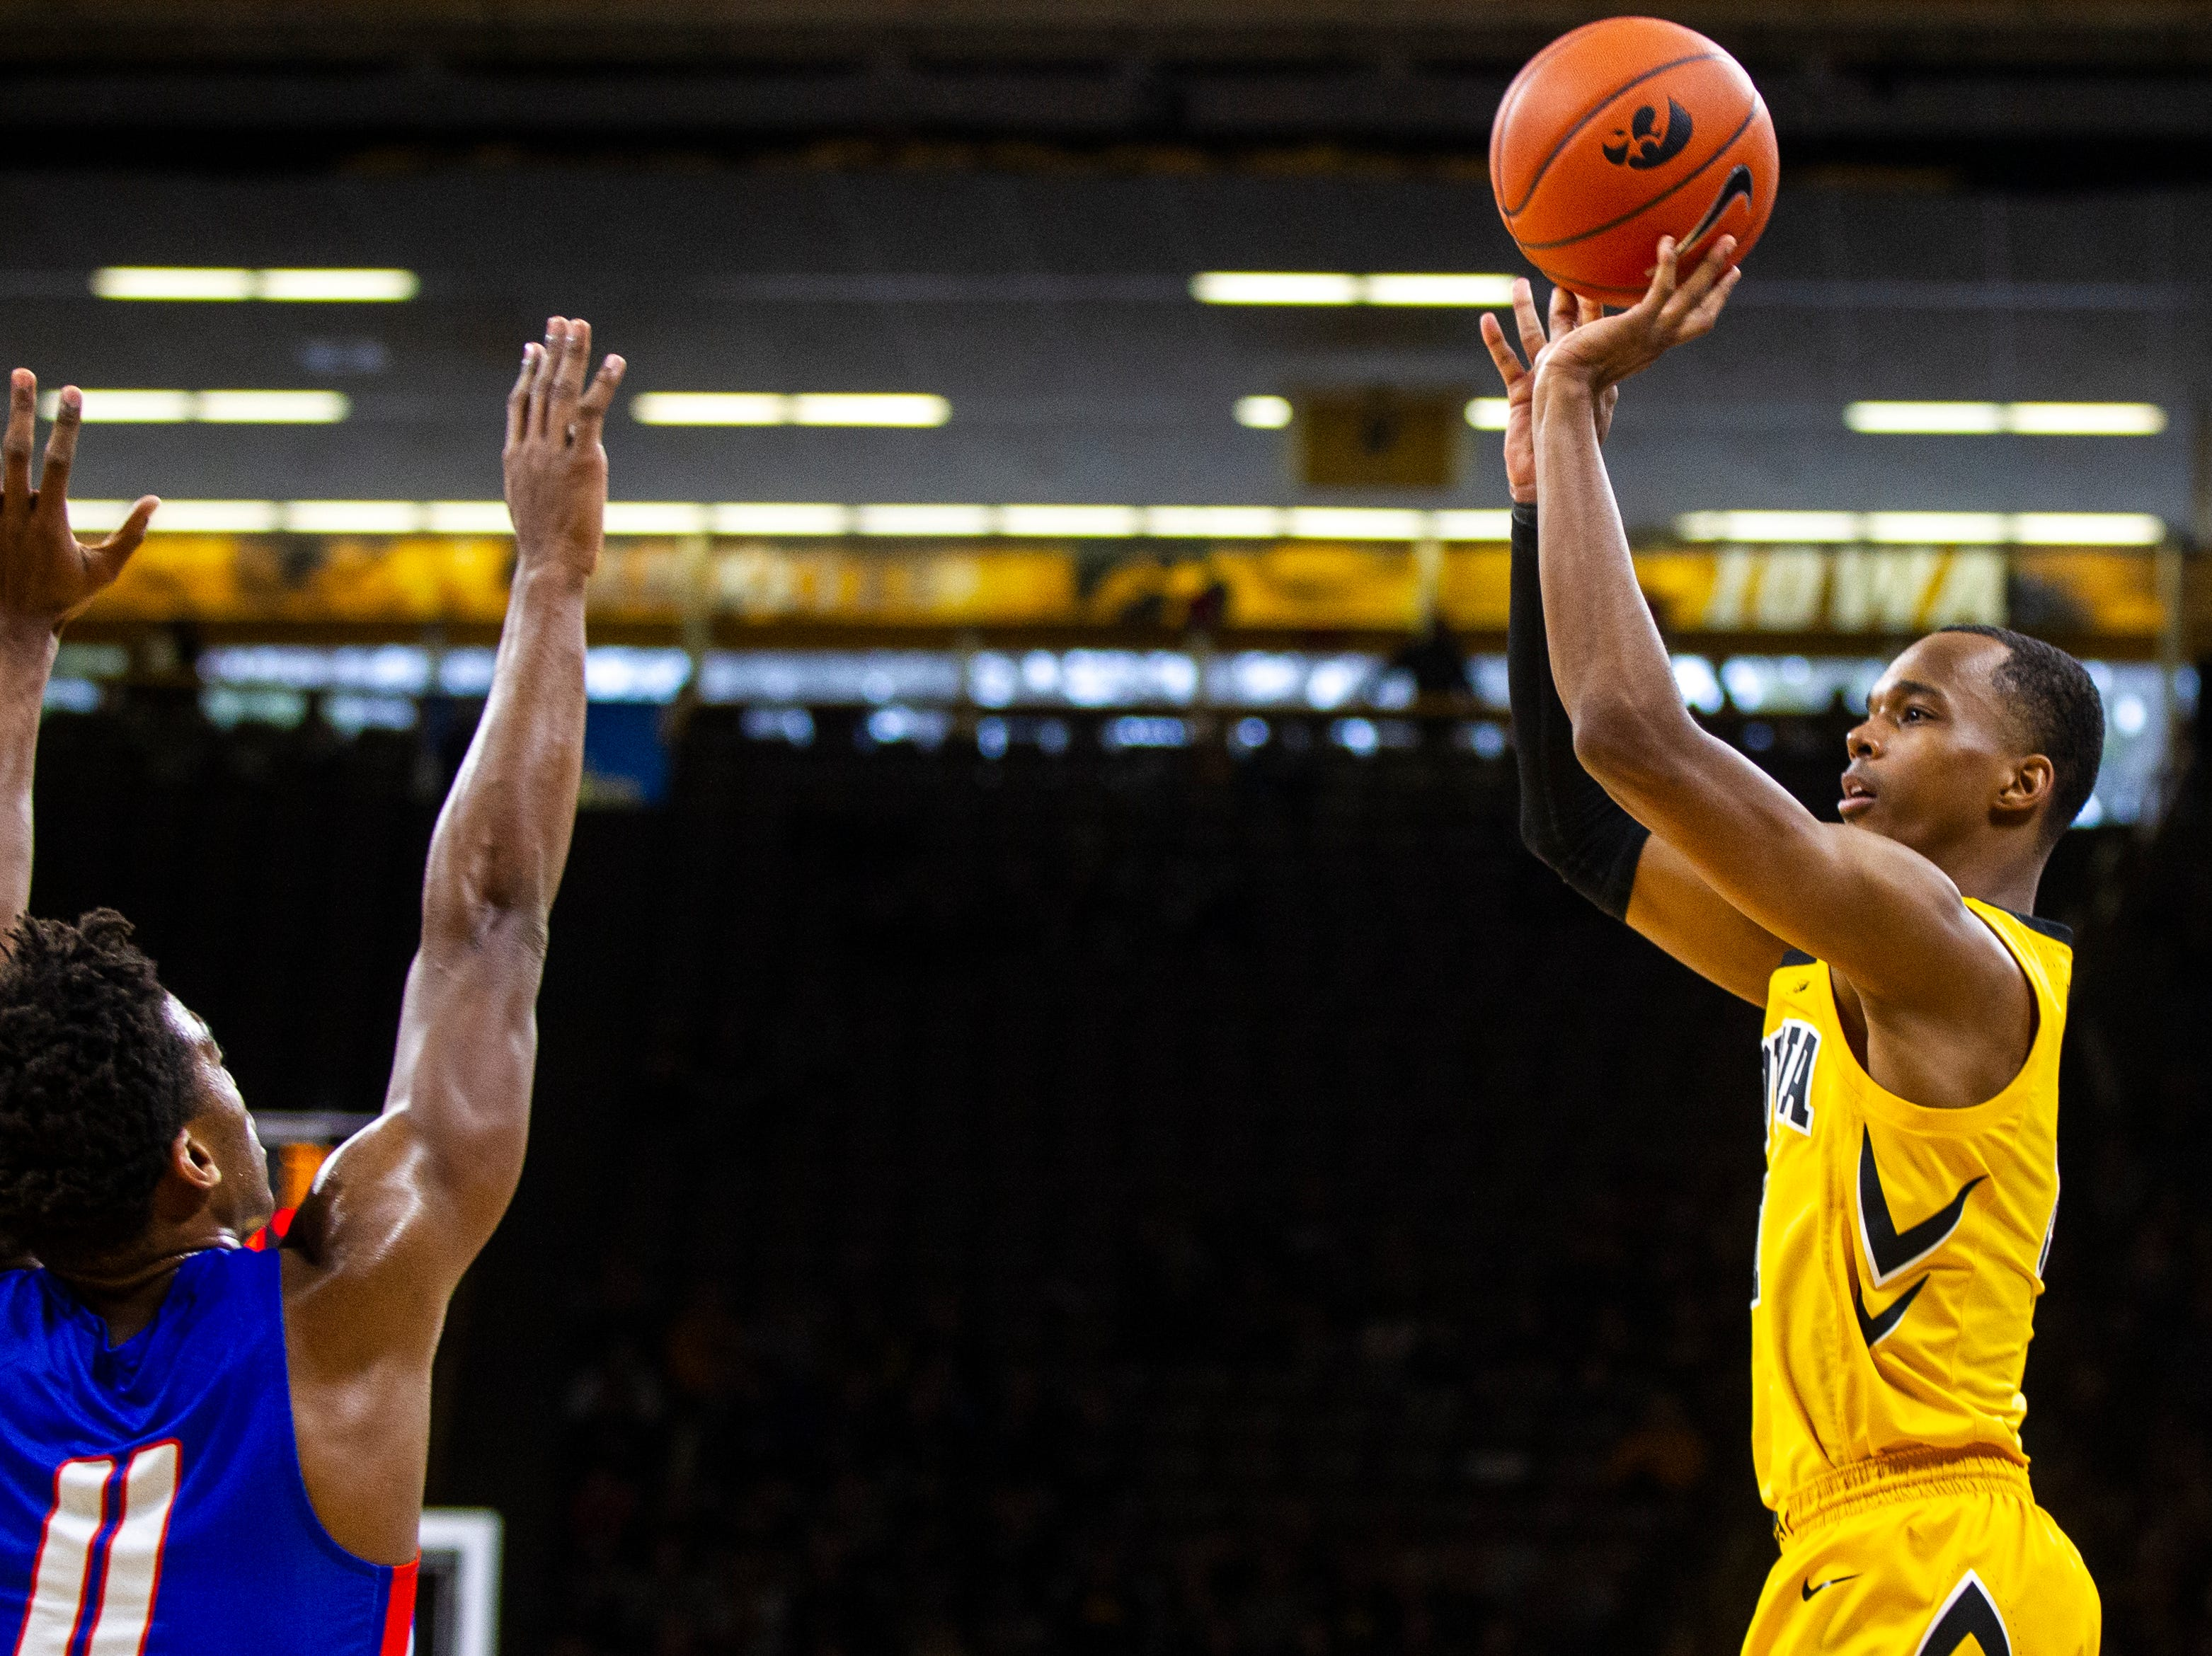 Iowa guard Maishe Dailey (1) attempts a 3-point basket during a NCAA men's basketball game on Saturday, Dec. 22, 2018, at Carver-Hawkeye Arena in Iowa City.